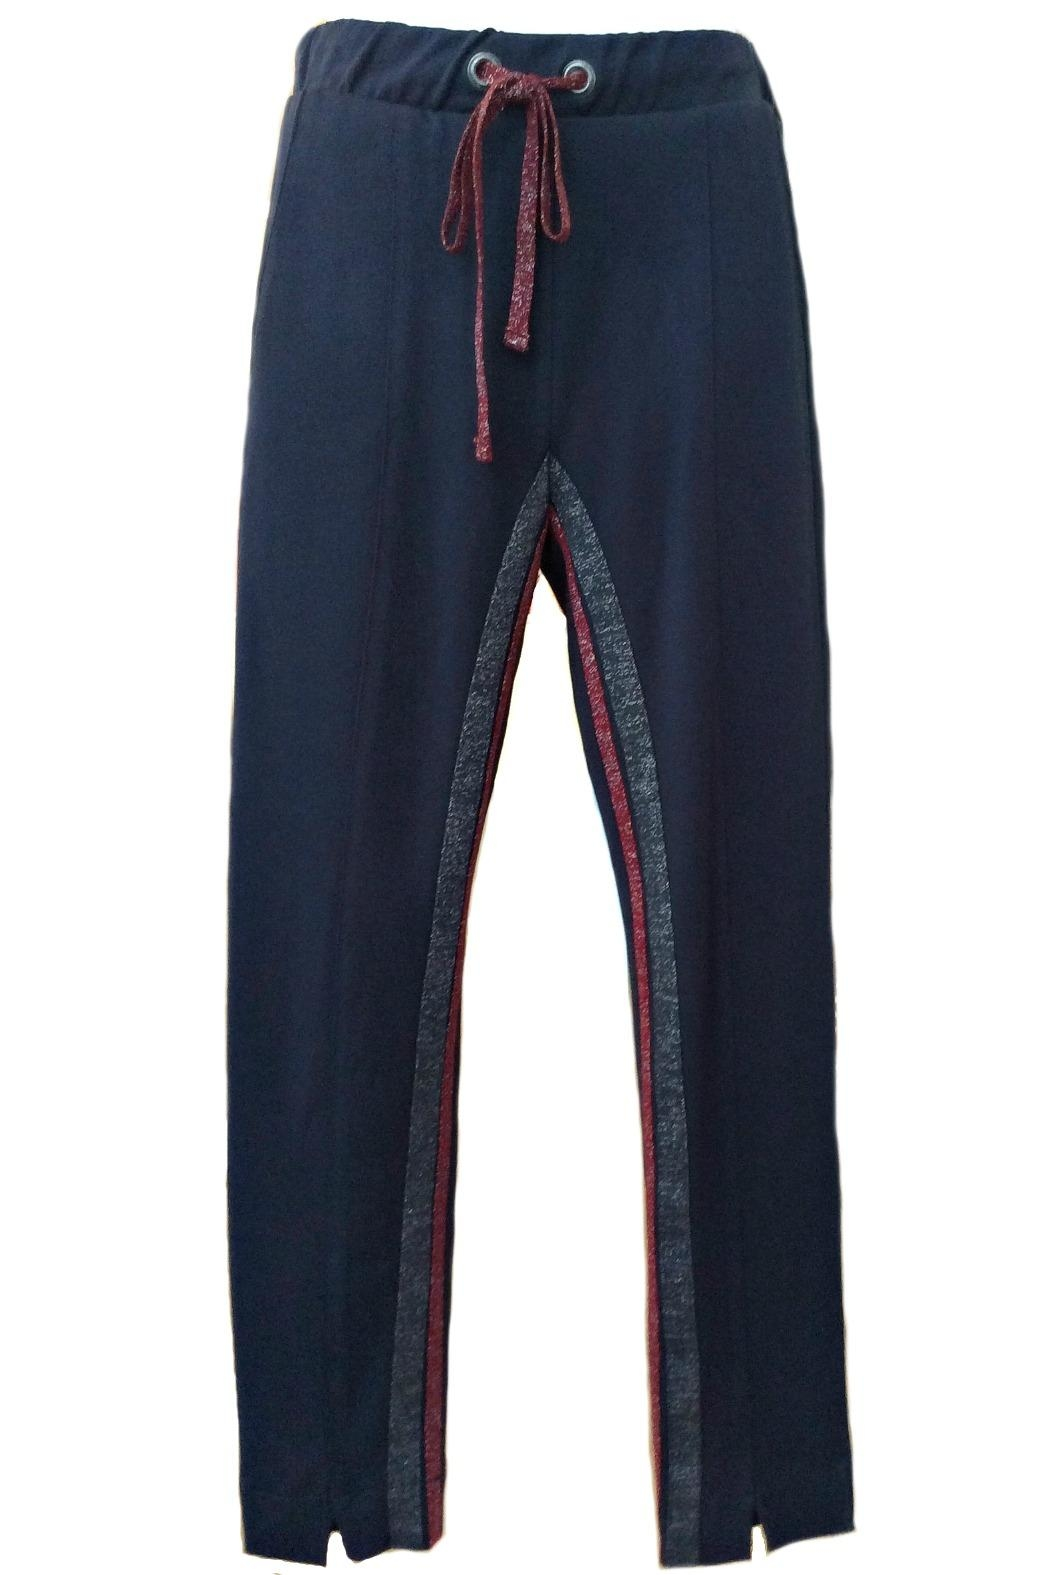 Maryley Navy Drawstring Pants - Front Cropped Image